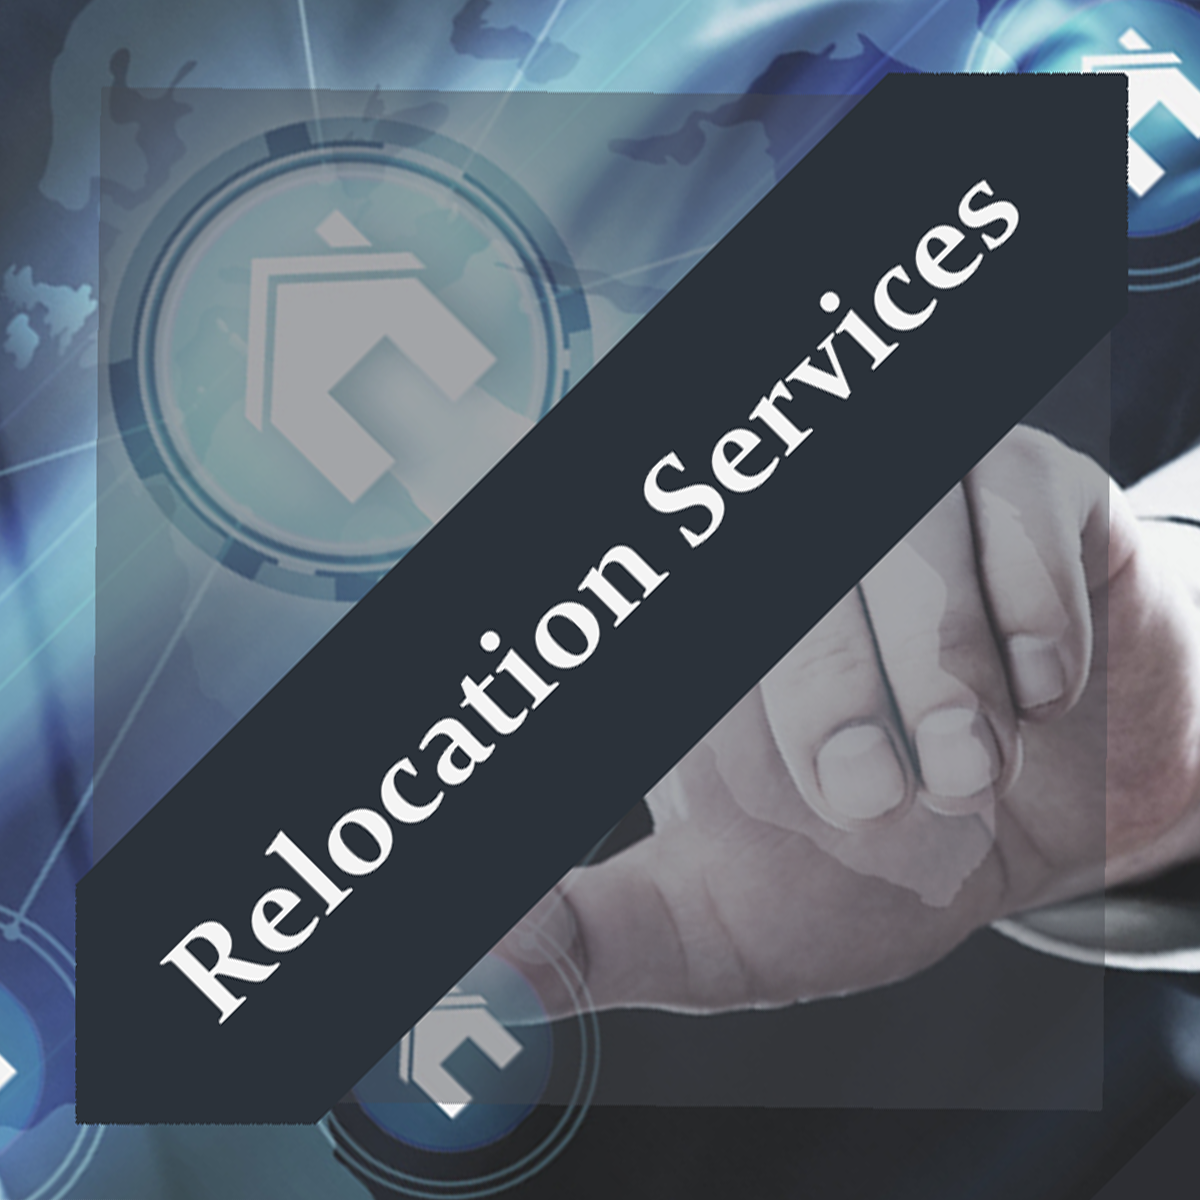 Corporate Relocation Candidate Services